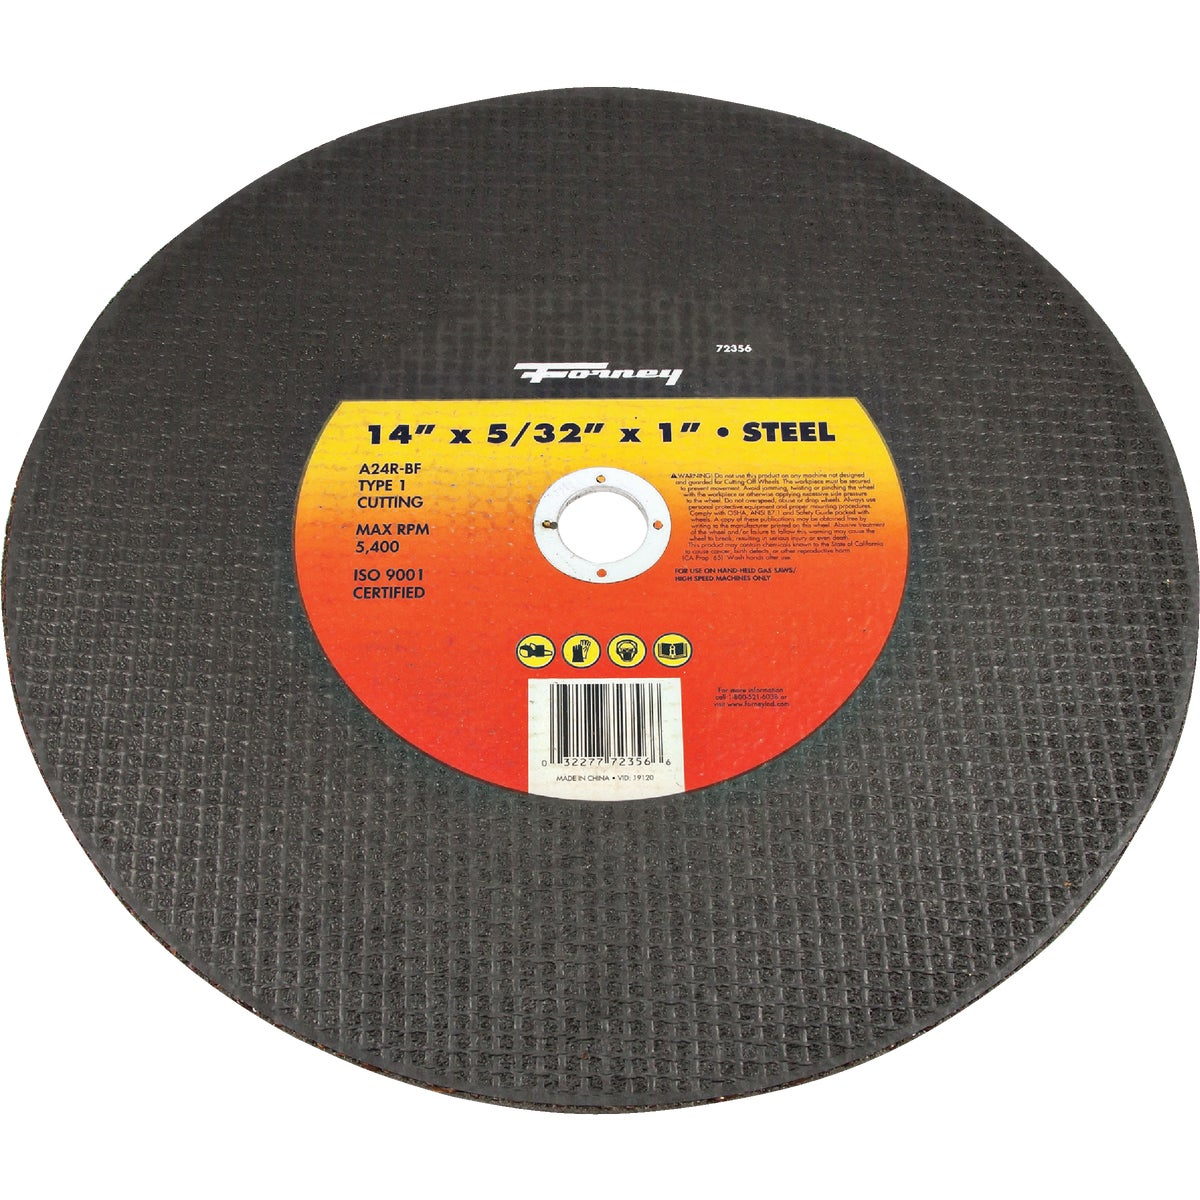 14X5/32X1 CUTTING WHEEL - 72356 by Forney Industries